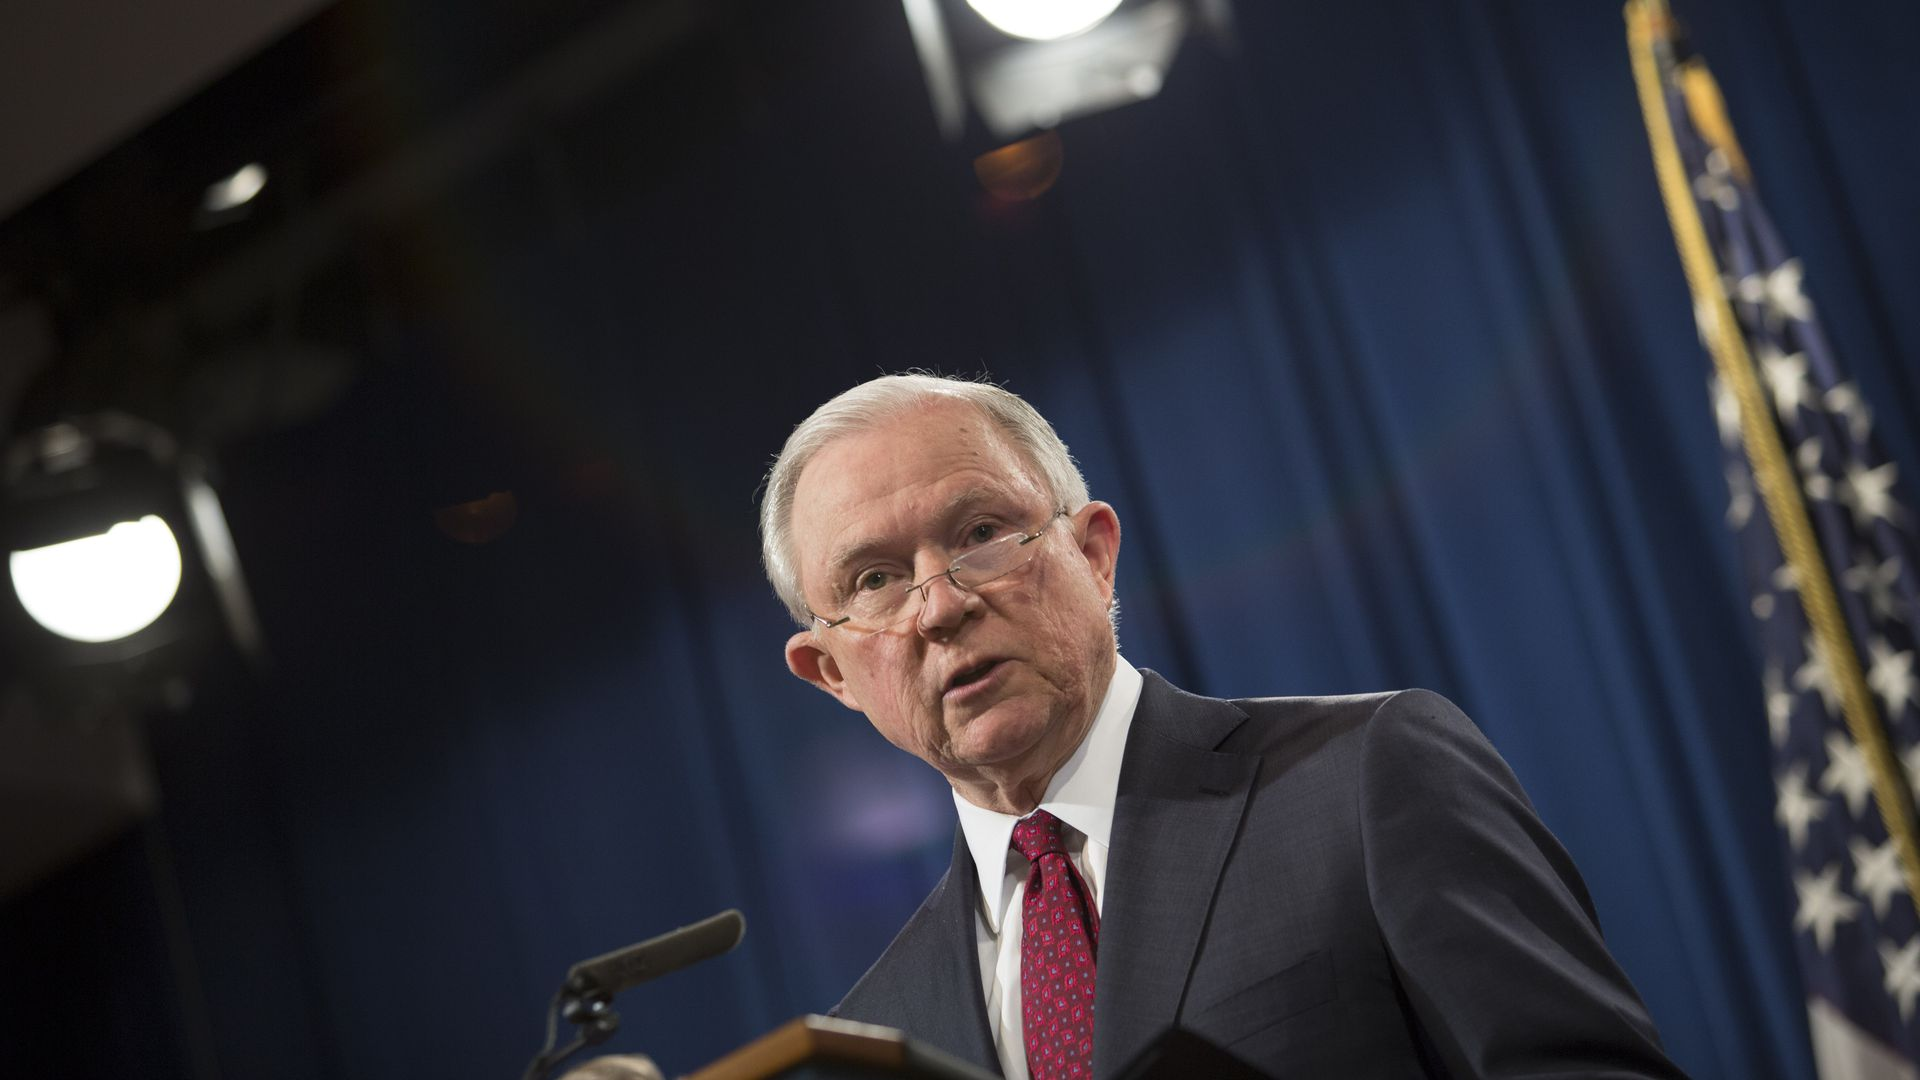 Attorney General Jeff Sessions. Photo: Toya Sarno Jordan/Getty Images